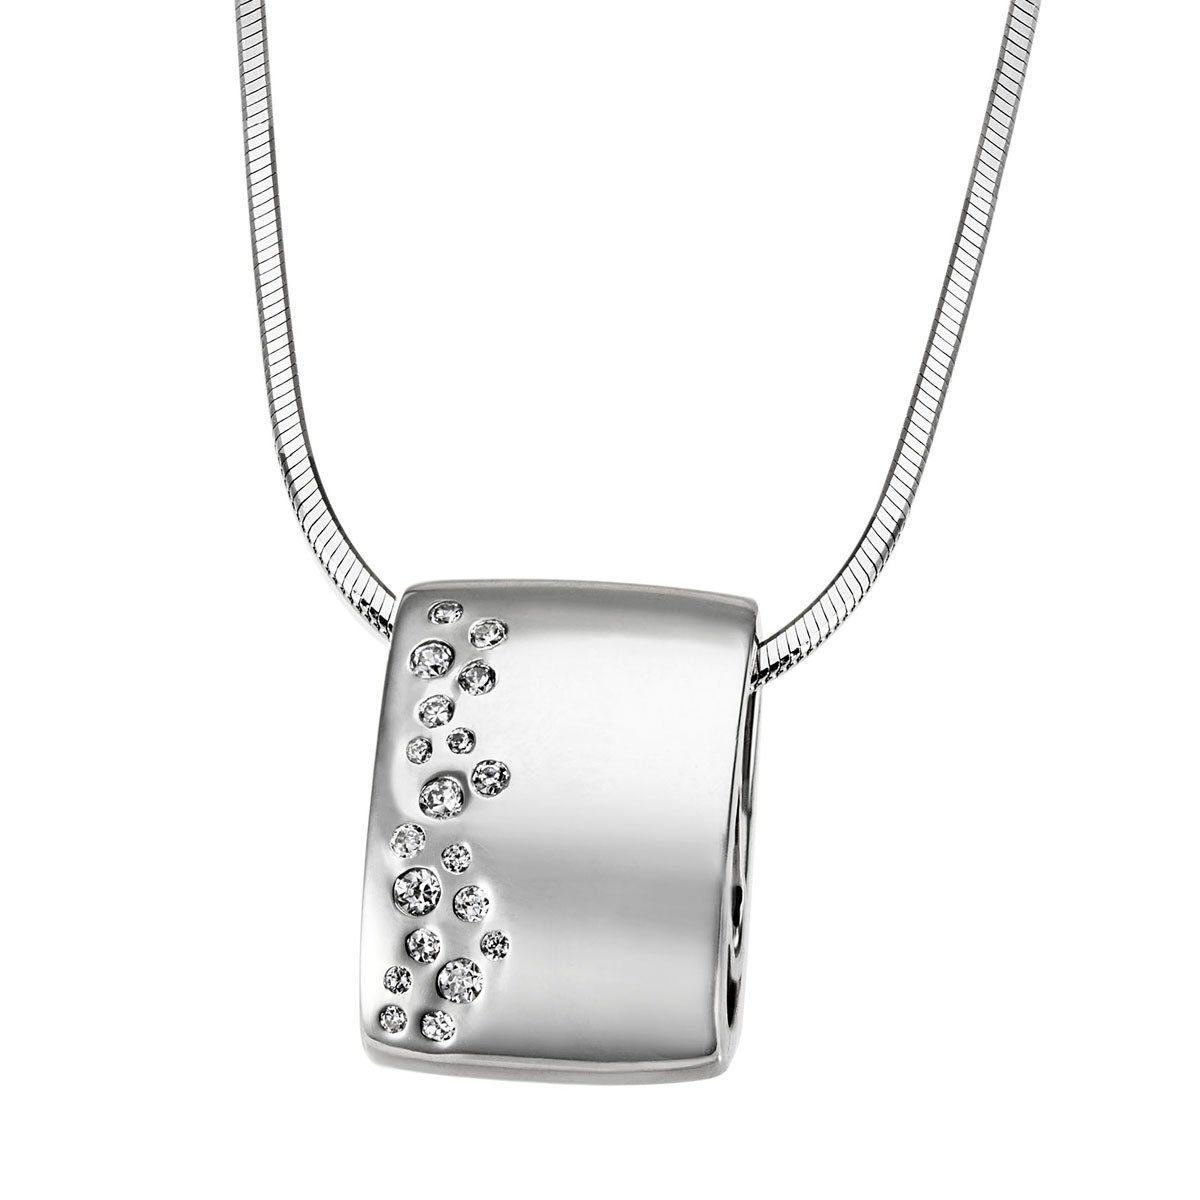 goldmaid Collier 925/- Sterlingsilber 19 Zirkonia